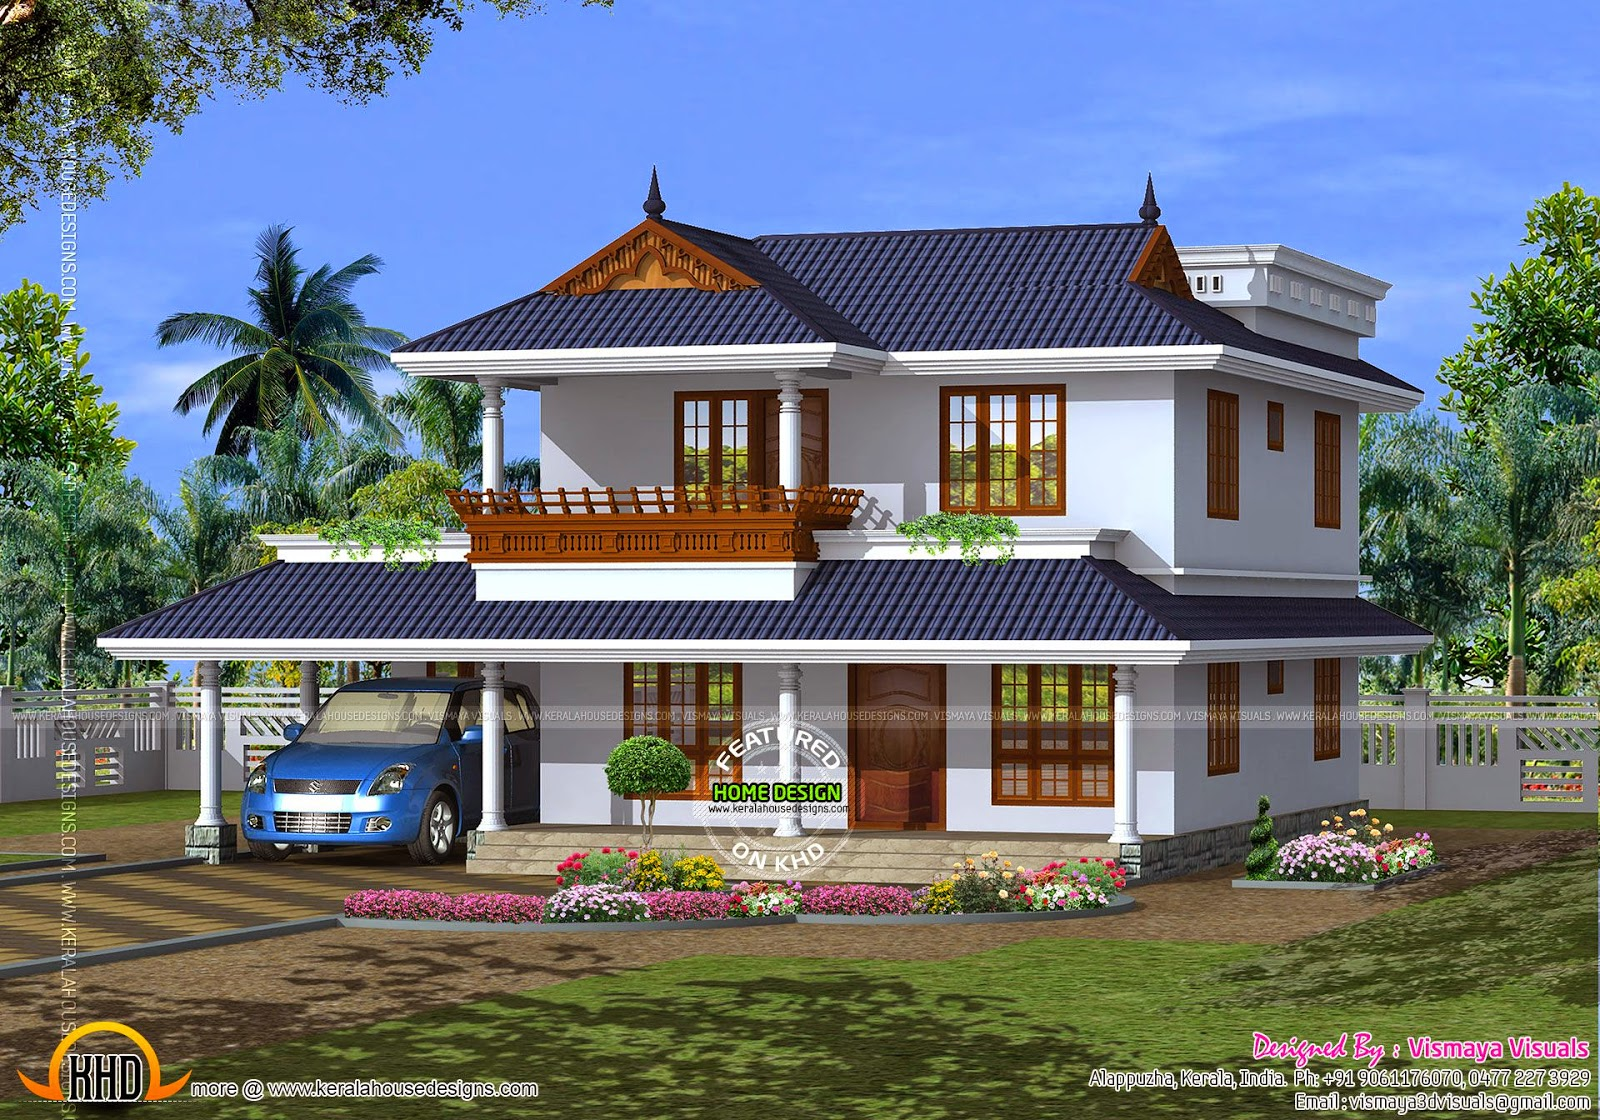 House model kerala kerala home design and floor plans for Kerala house models photos